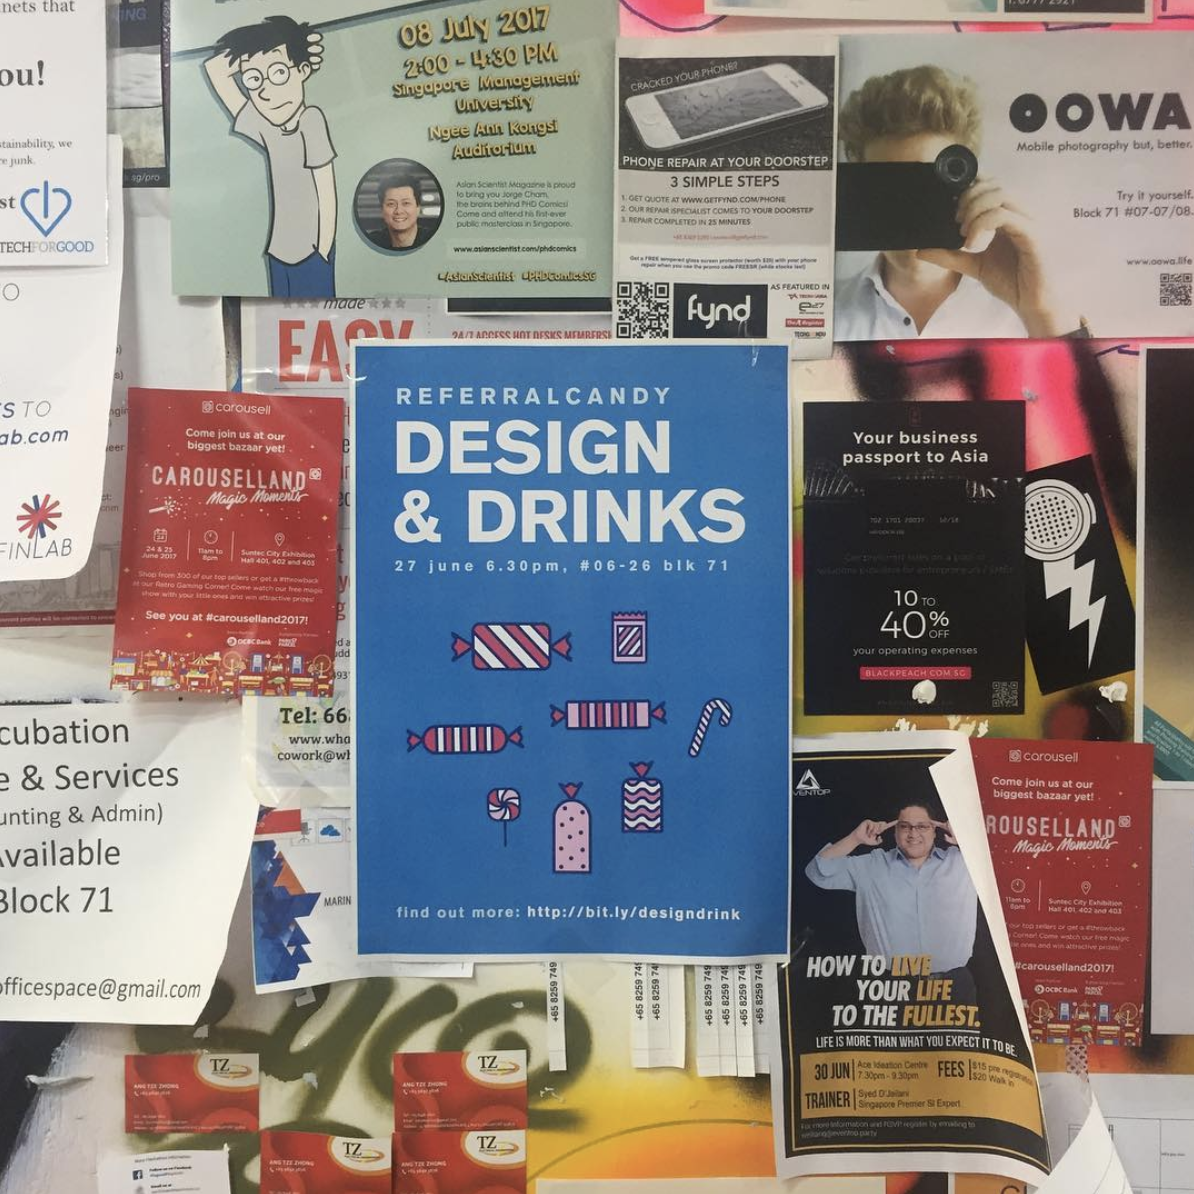 design-drinks-poster